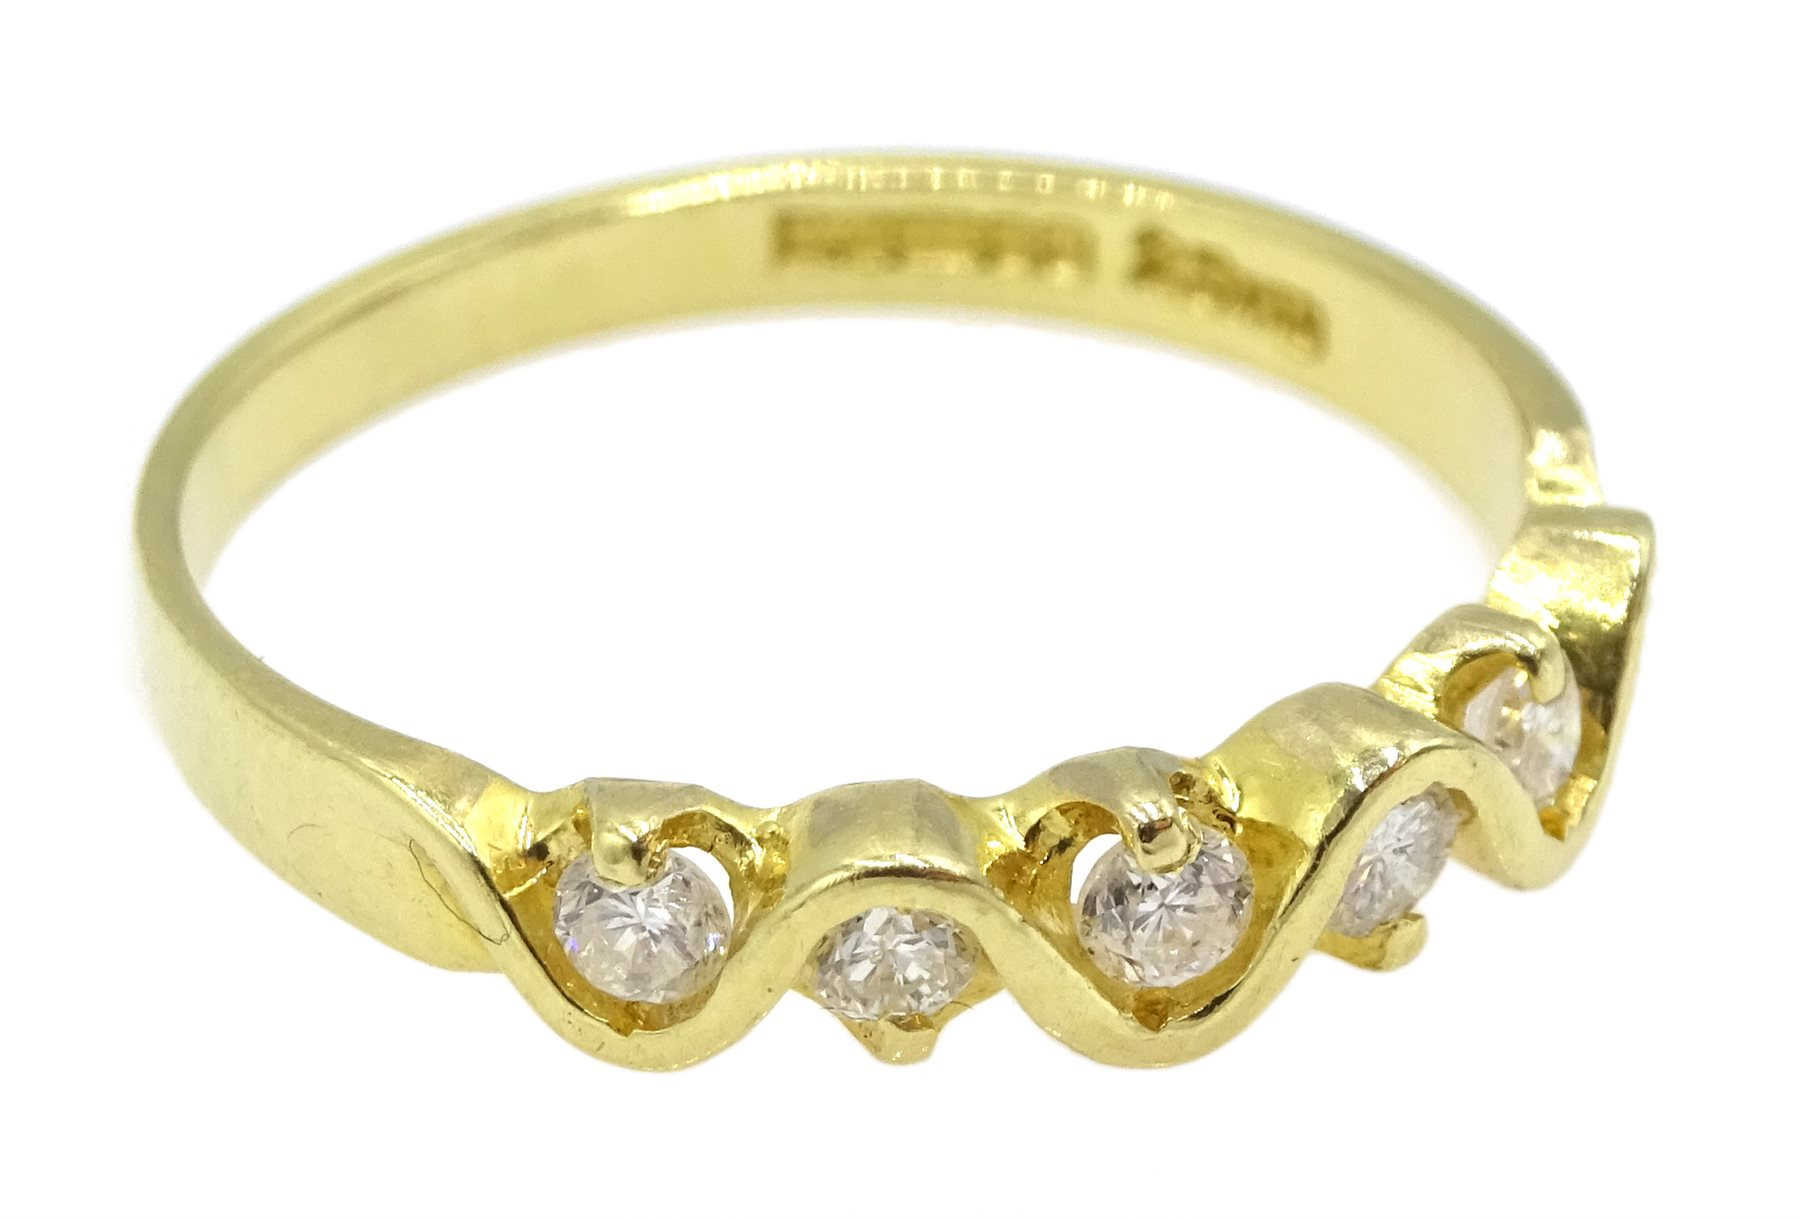 18ct gold seven stone diamond, weave design ring, London import marks 1994, total diamond weight 0.2 - Image 3 of 4